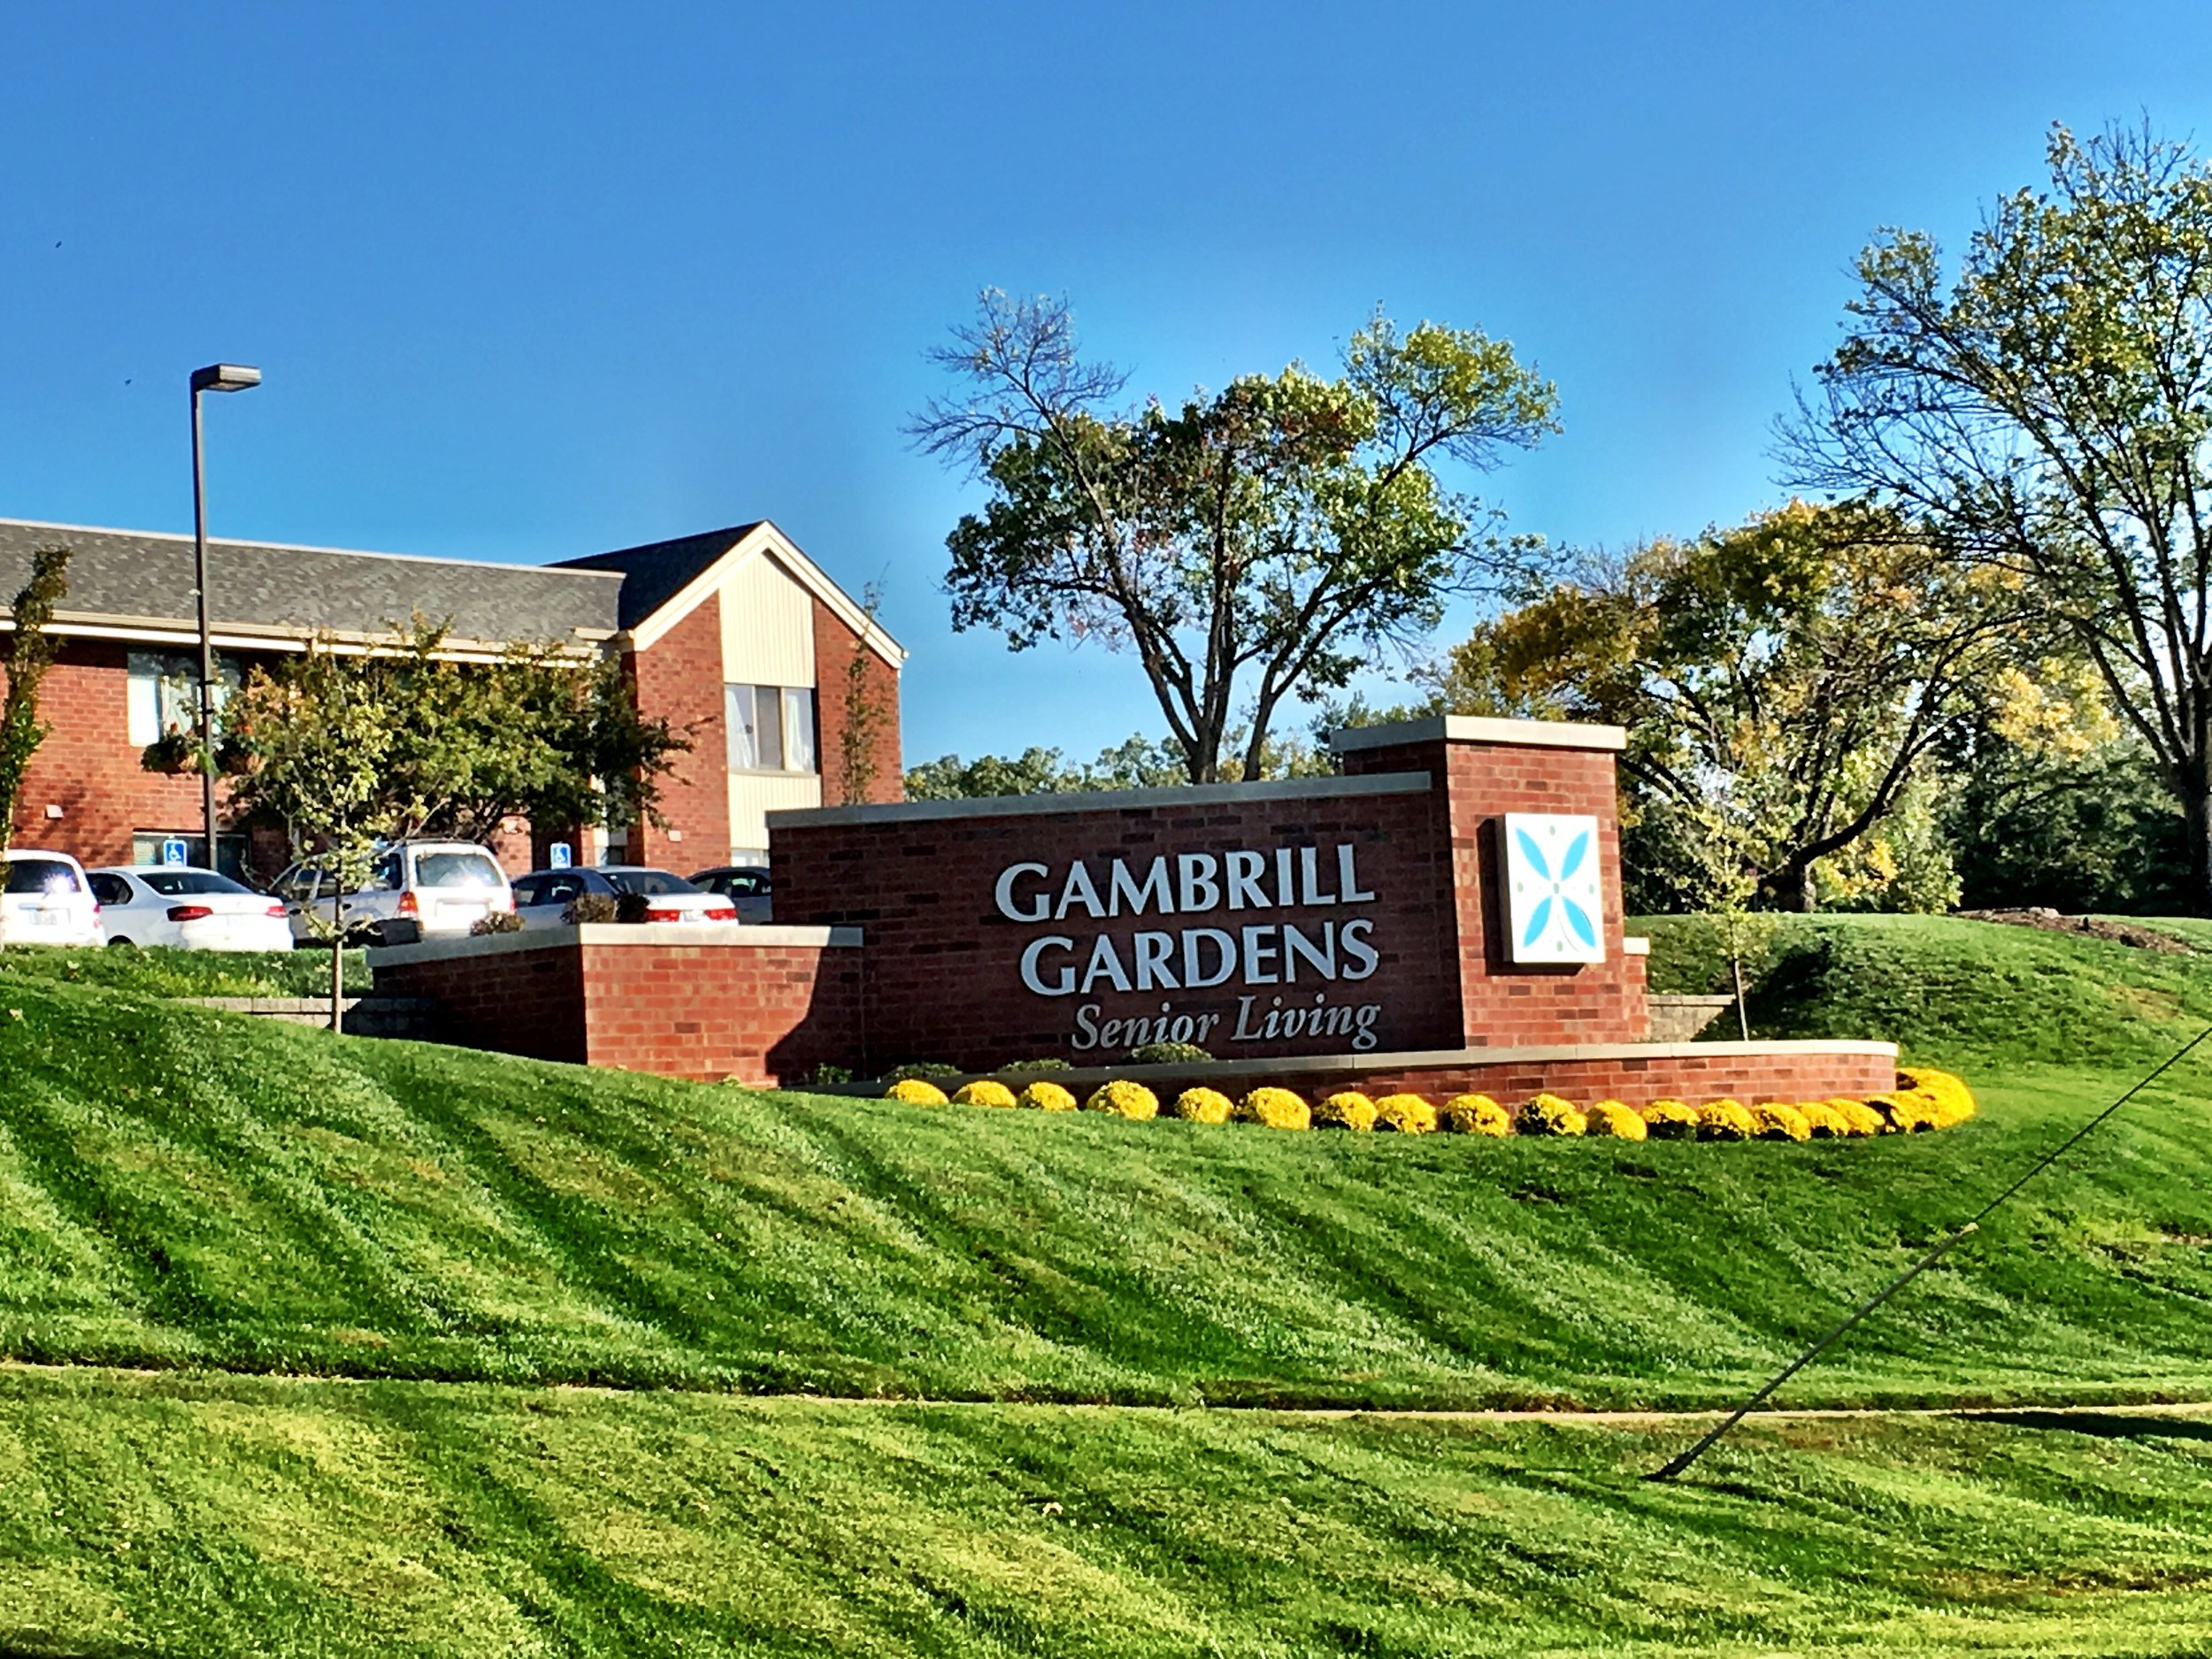 Gambrill Gardens Sign.JPG